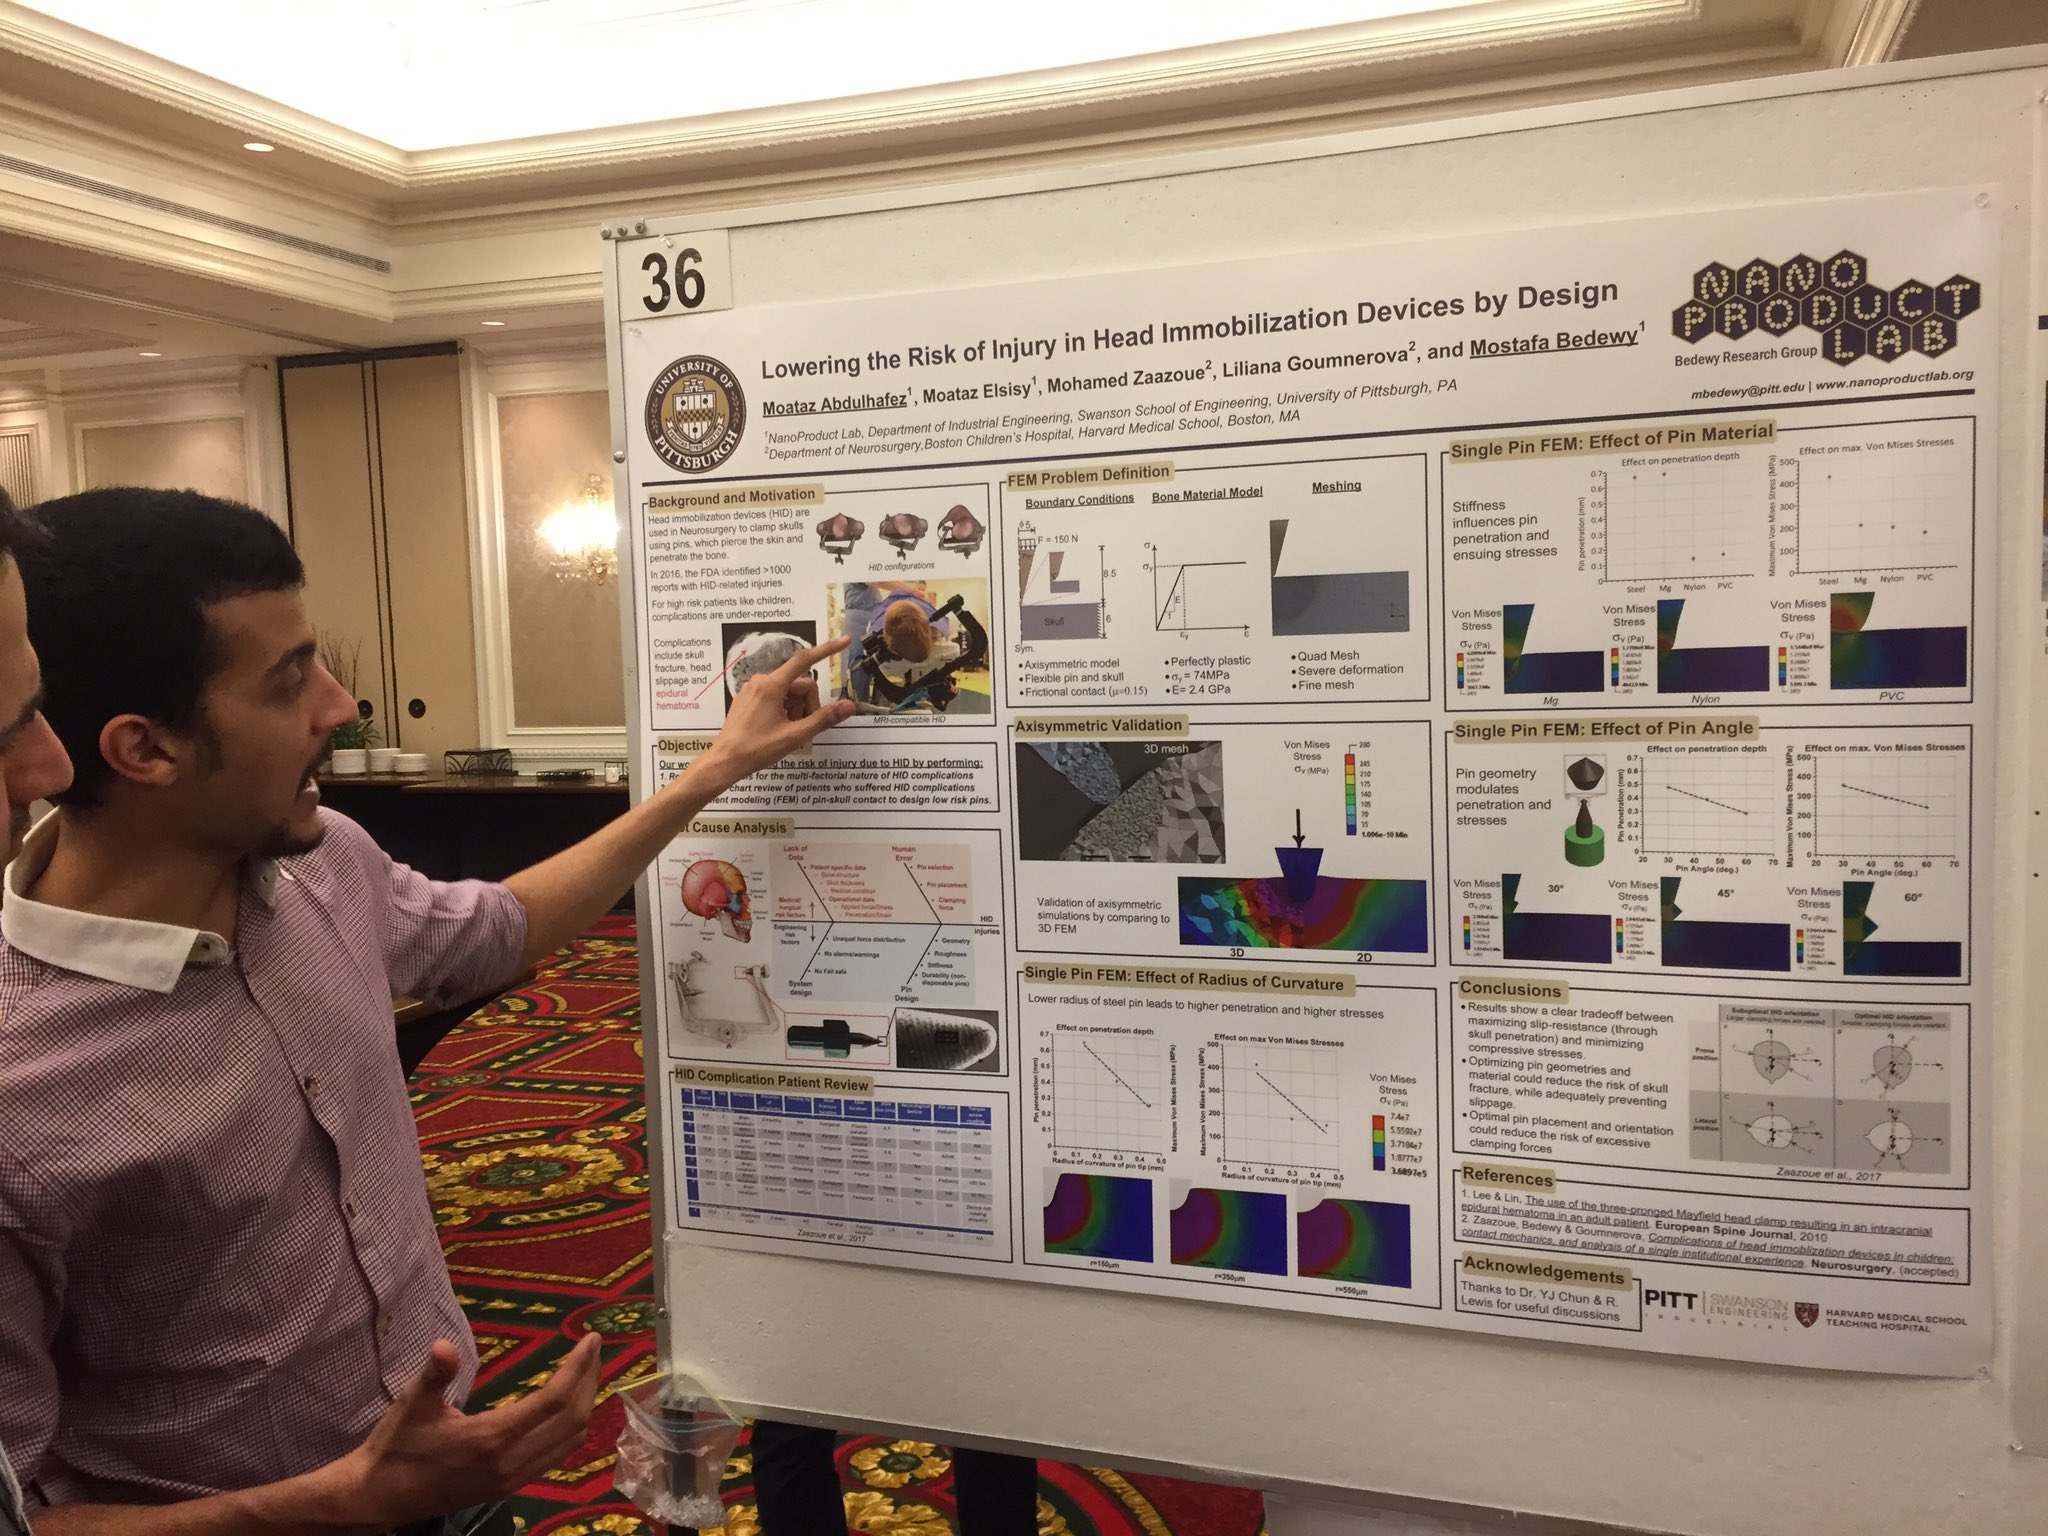 Moataz Abdulhafez presents a poster on the design and mechanics of a neurosurgical device